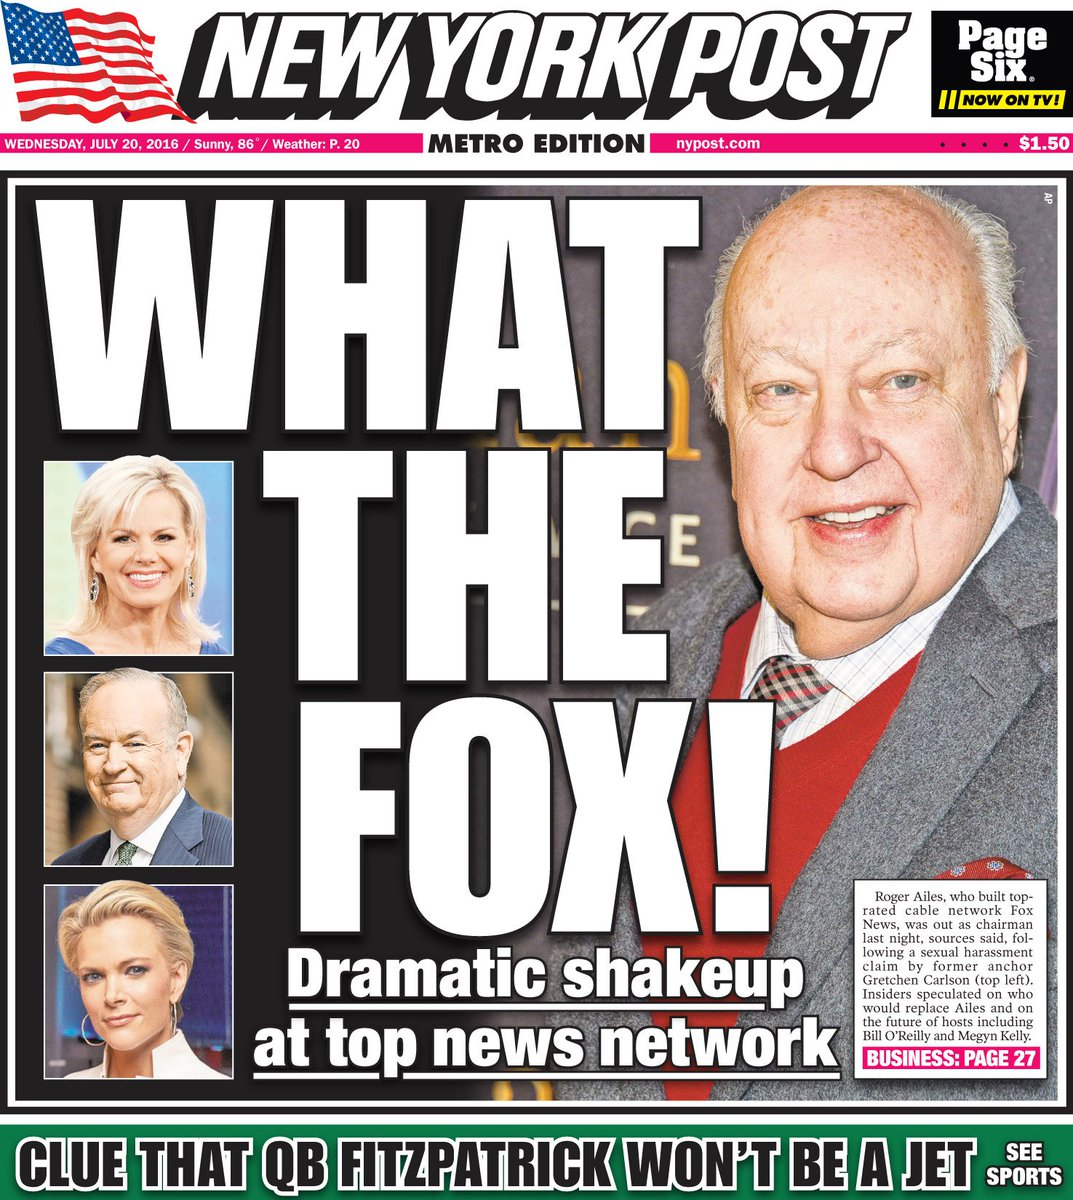 New york post sexual harassment